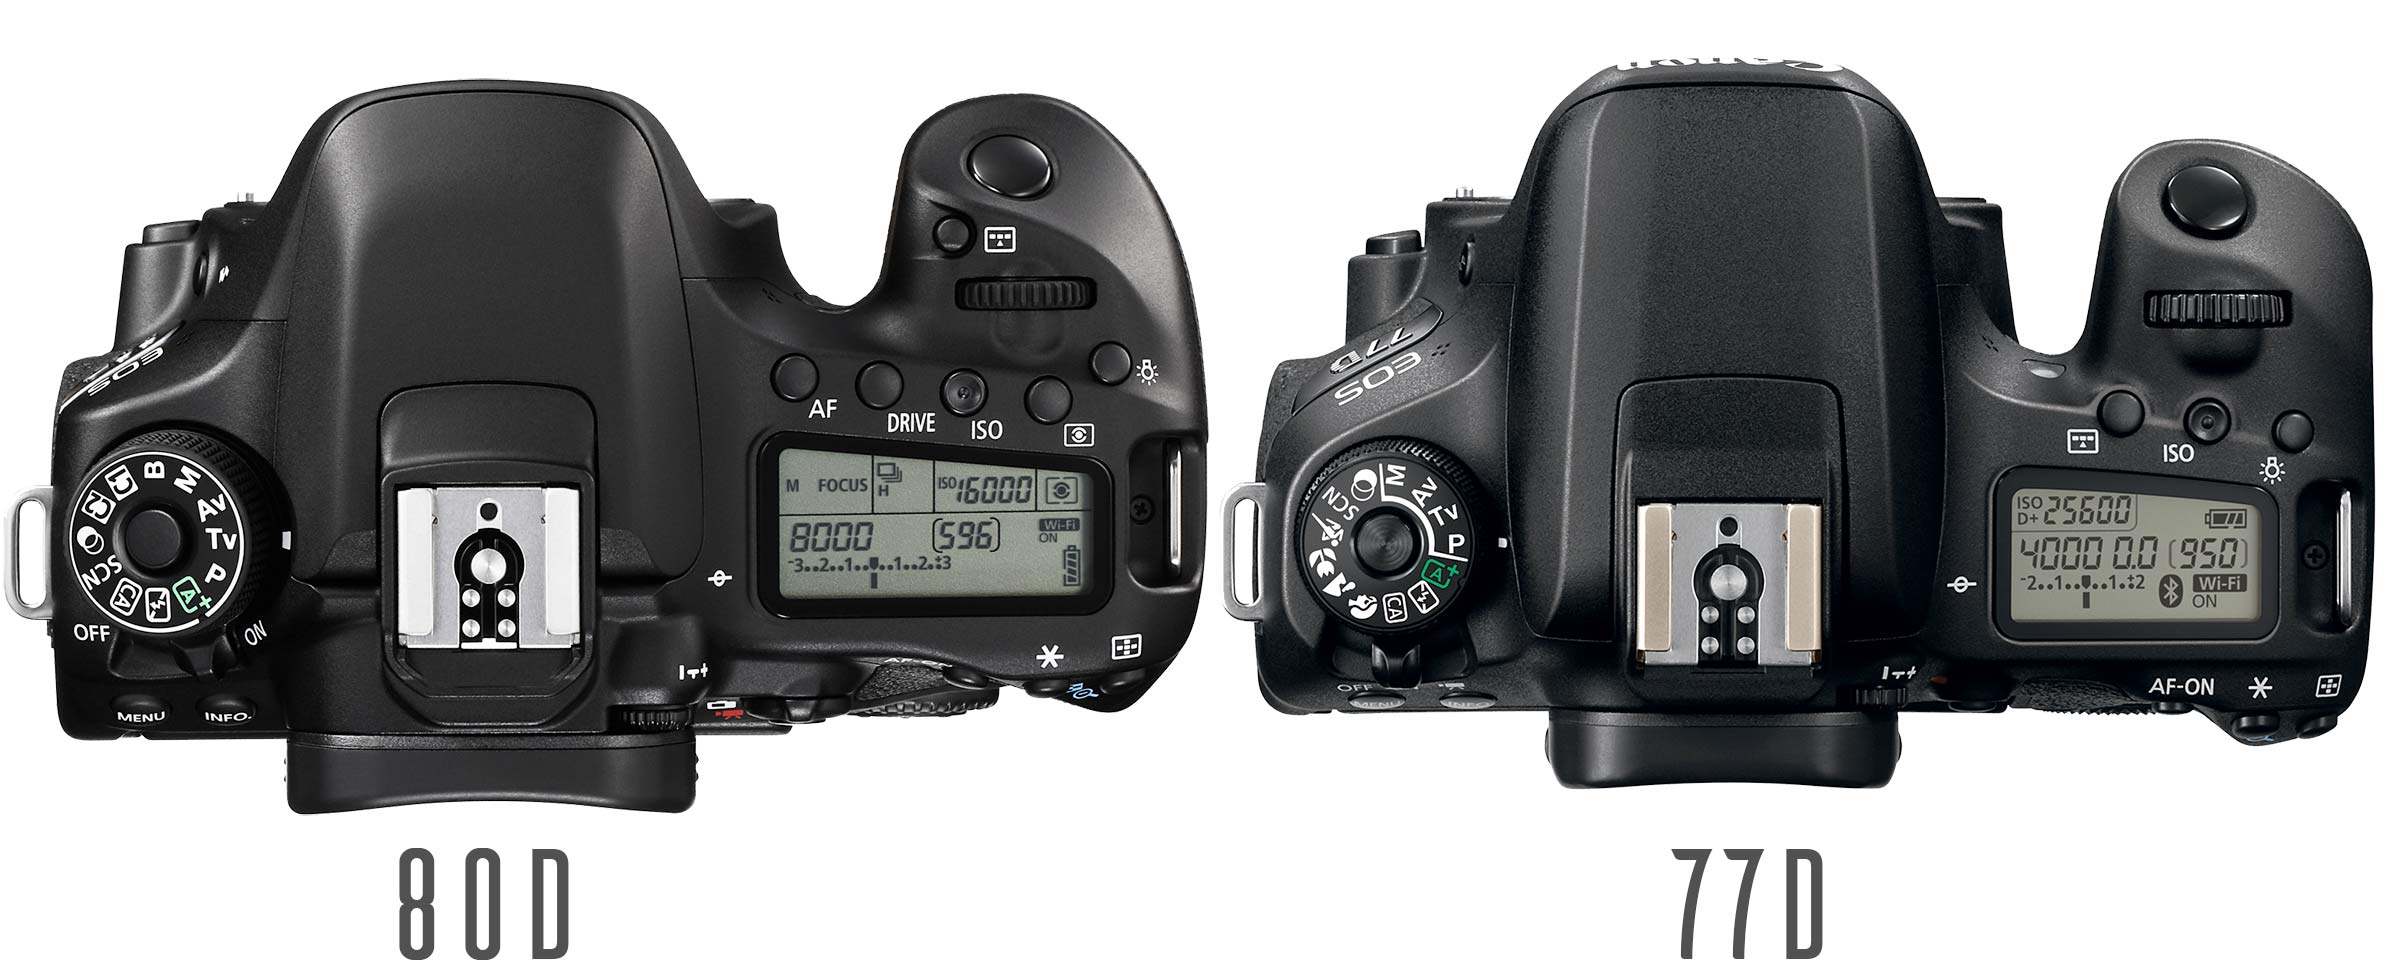 The 77D and 80D both have a camera top LCD display although they don t display exactly the same information